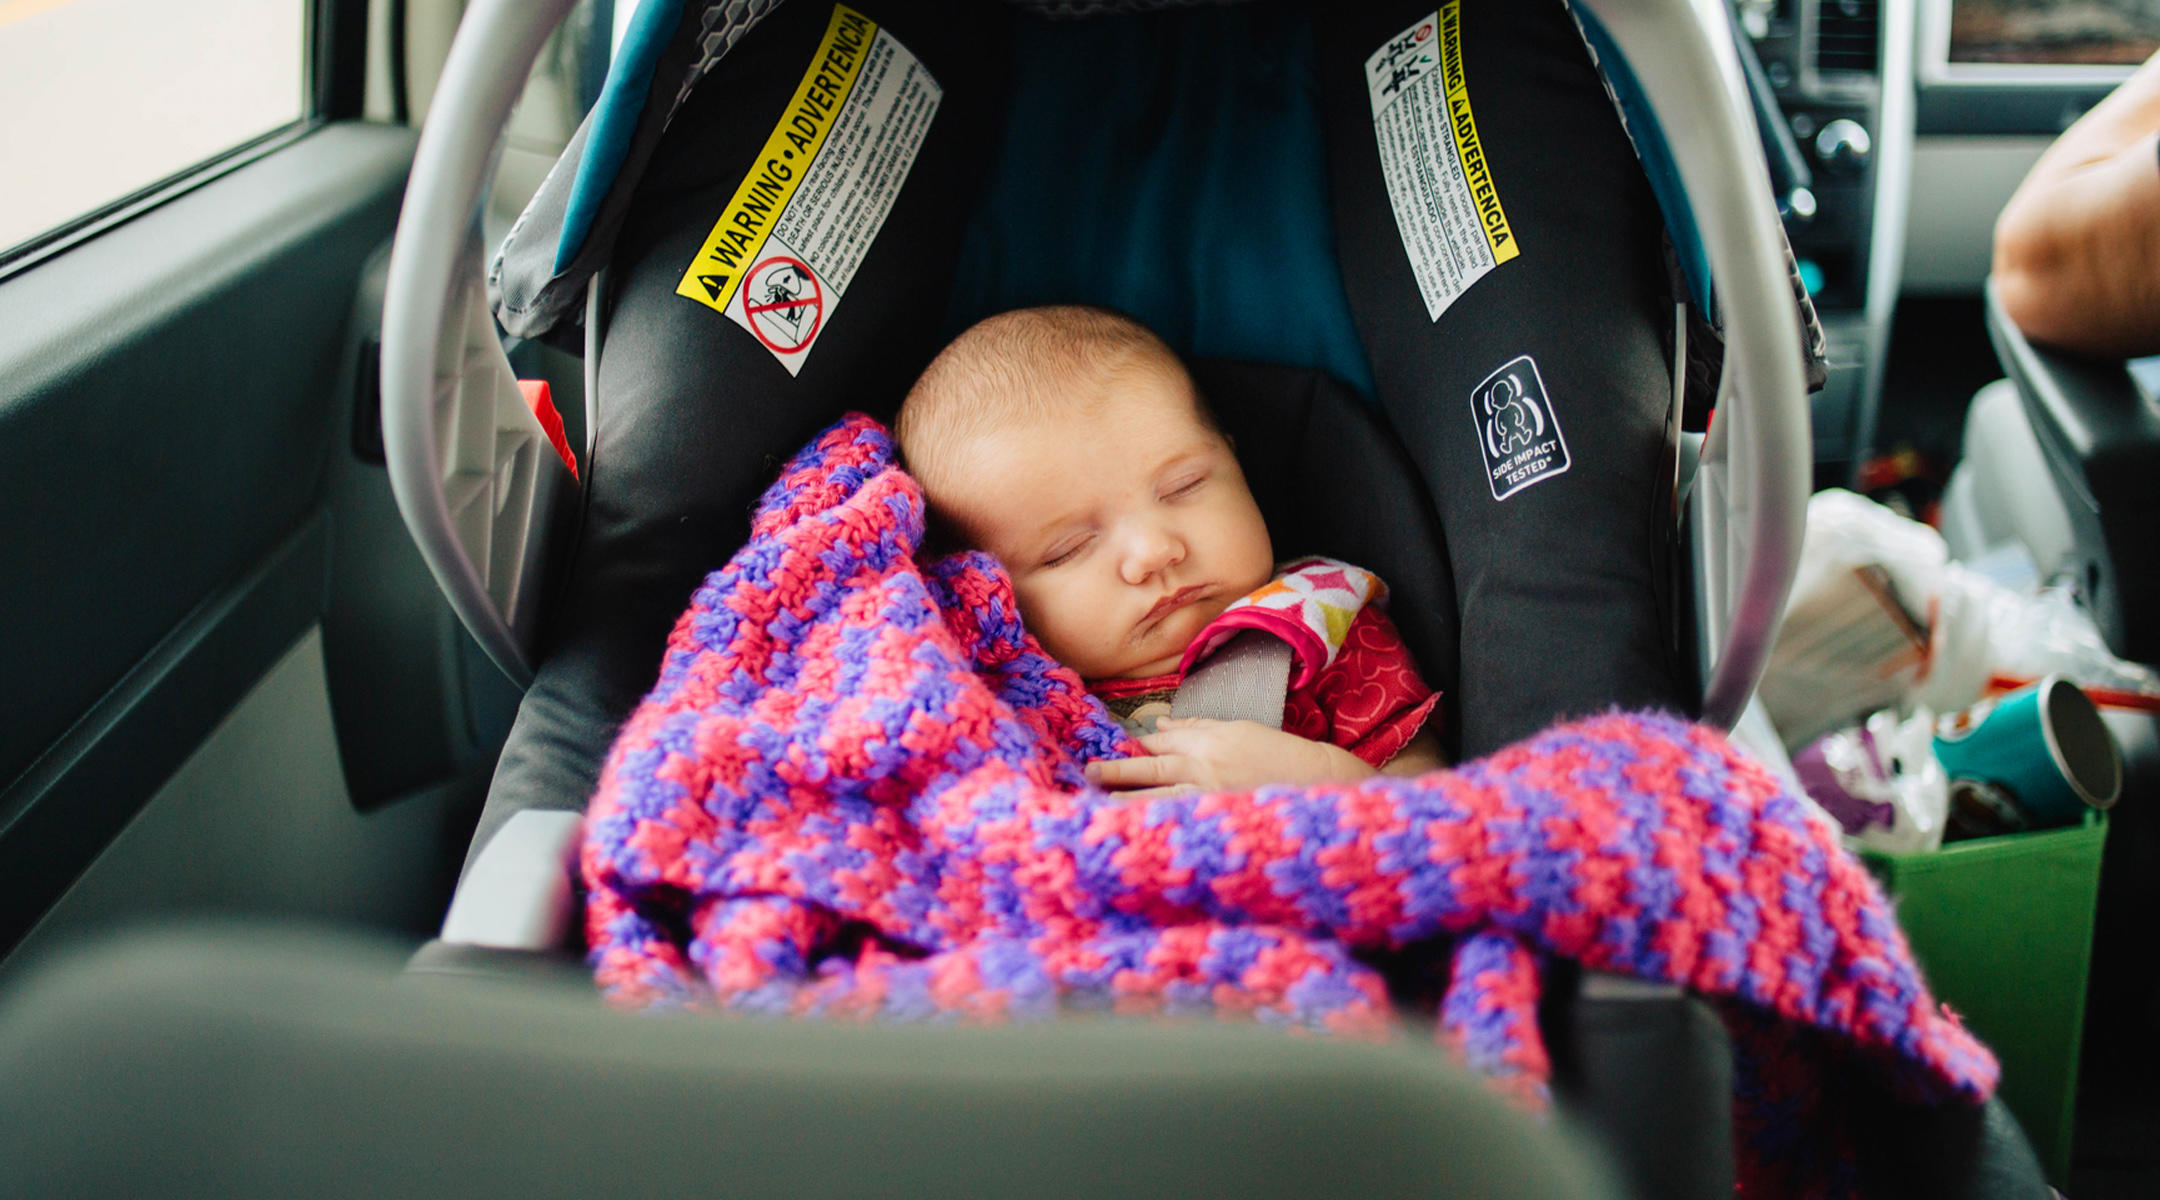 Infant in car seat.jpg